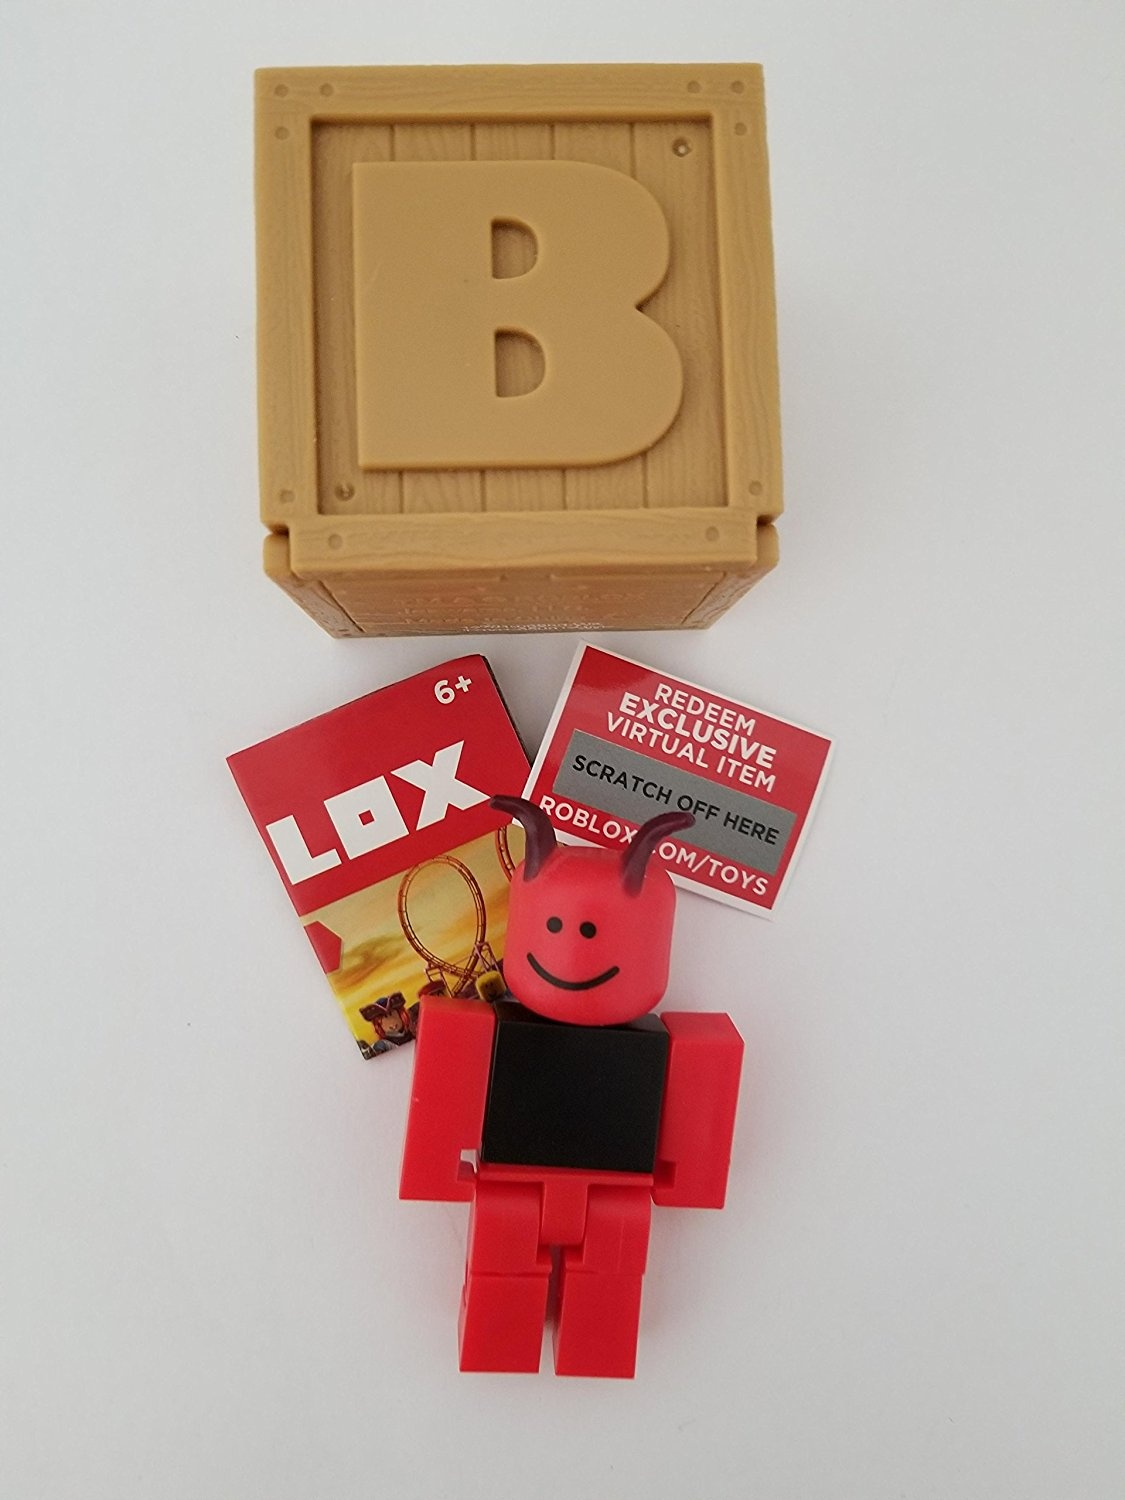 Roblox Toy Codes 2019 : roblox, codes, Roblox, Series, Codes, Robux